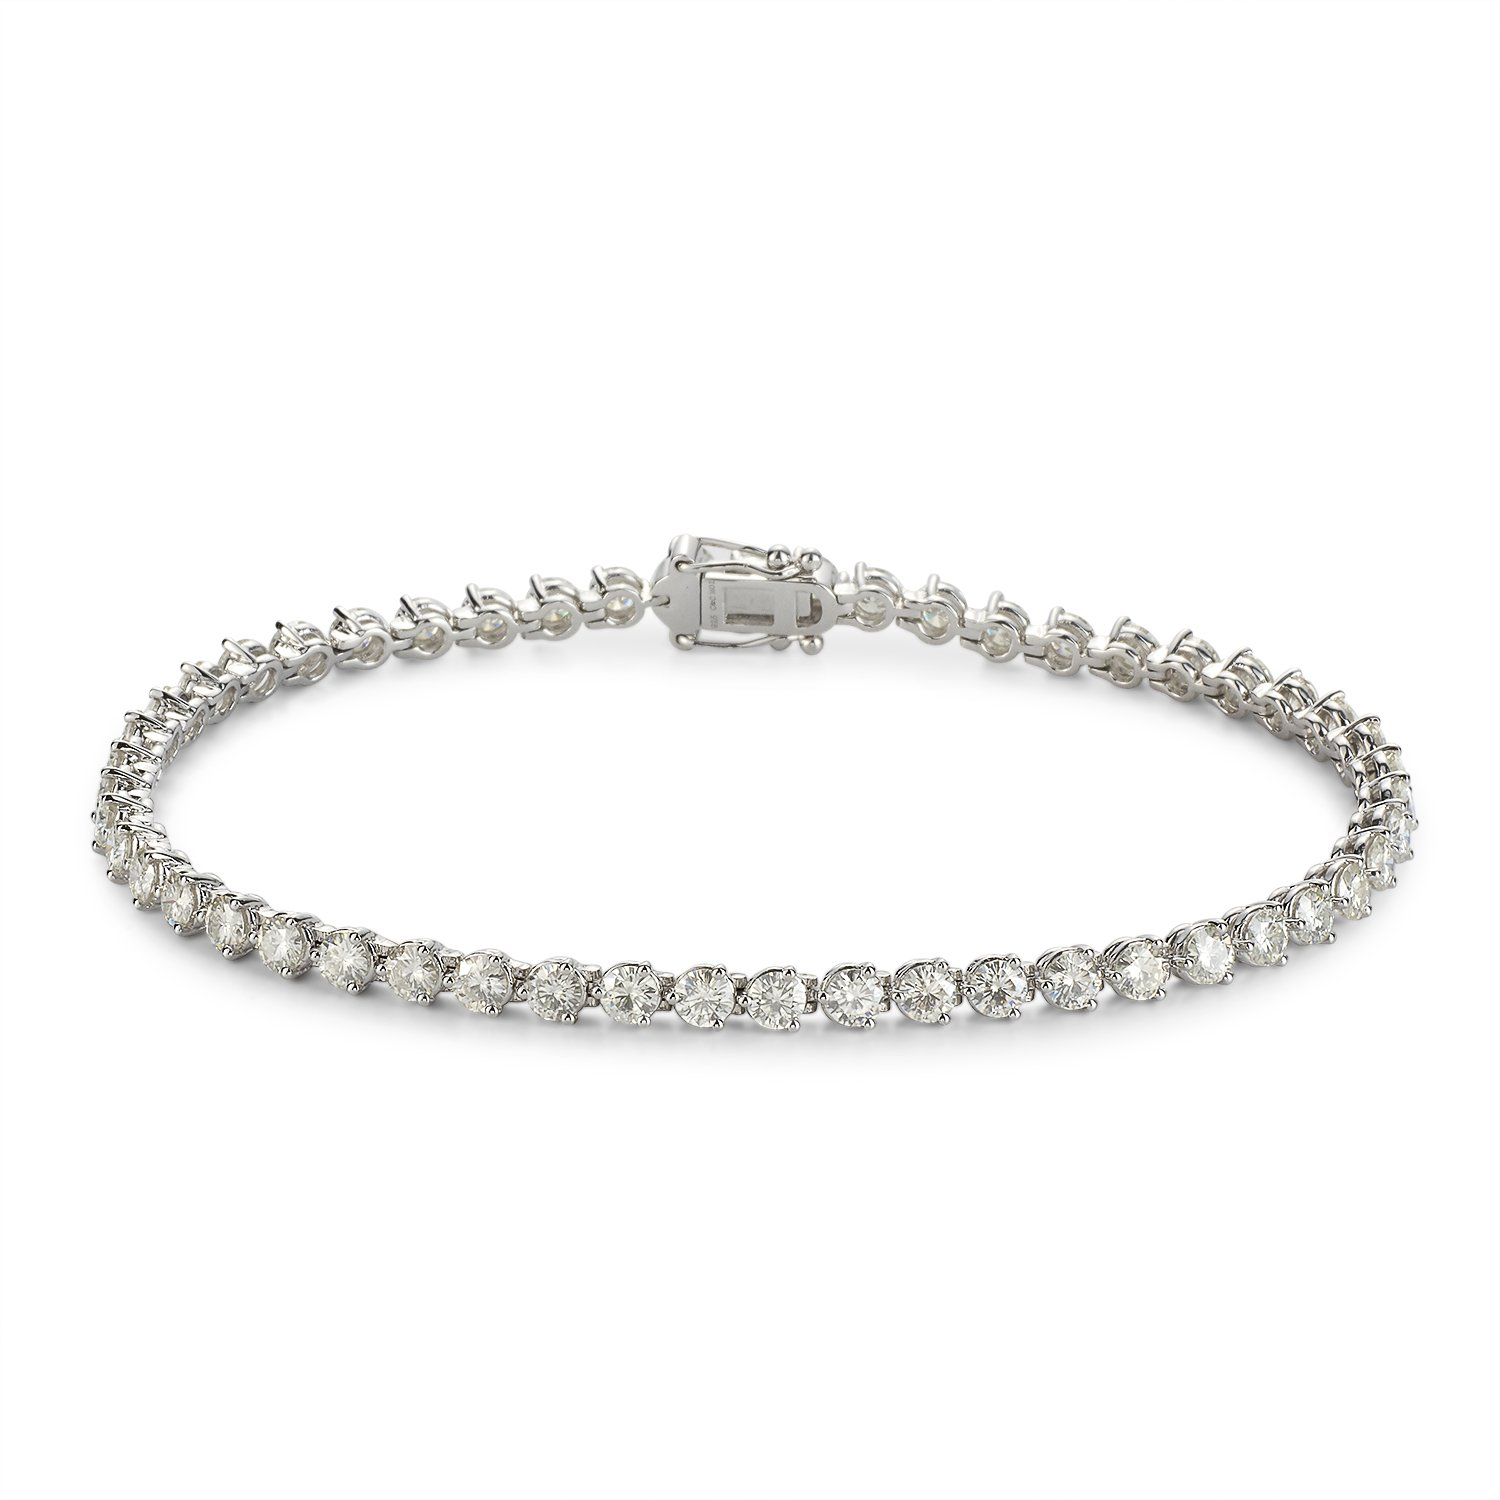 Forever Classic Round 3.25mm Moissanite Tennis Bracelet, 6.63cttw DEW by Charles & Colvard